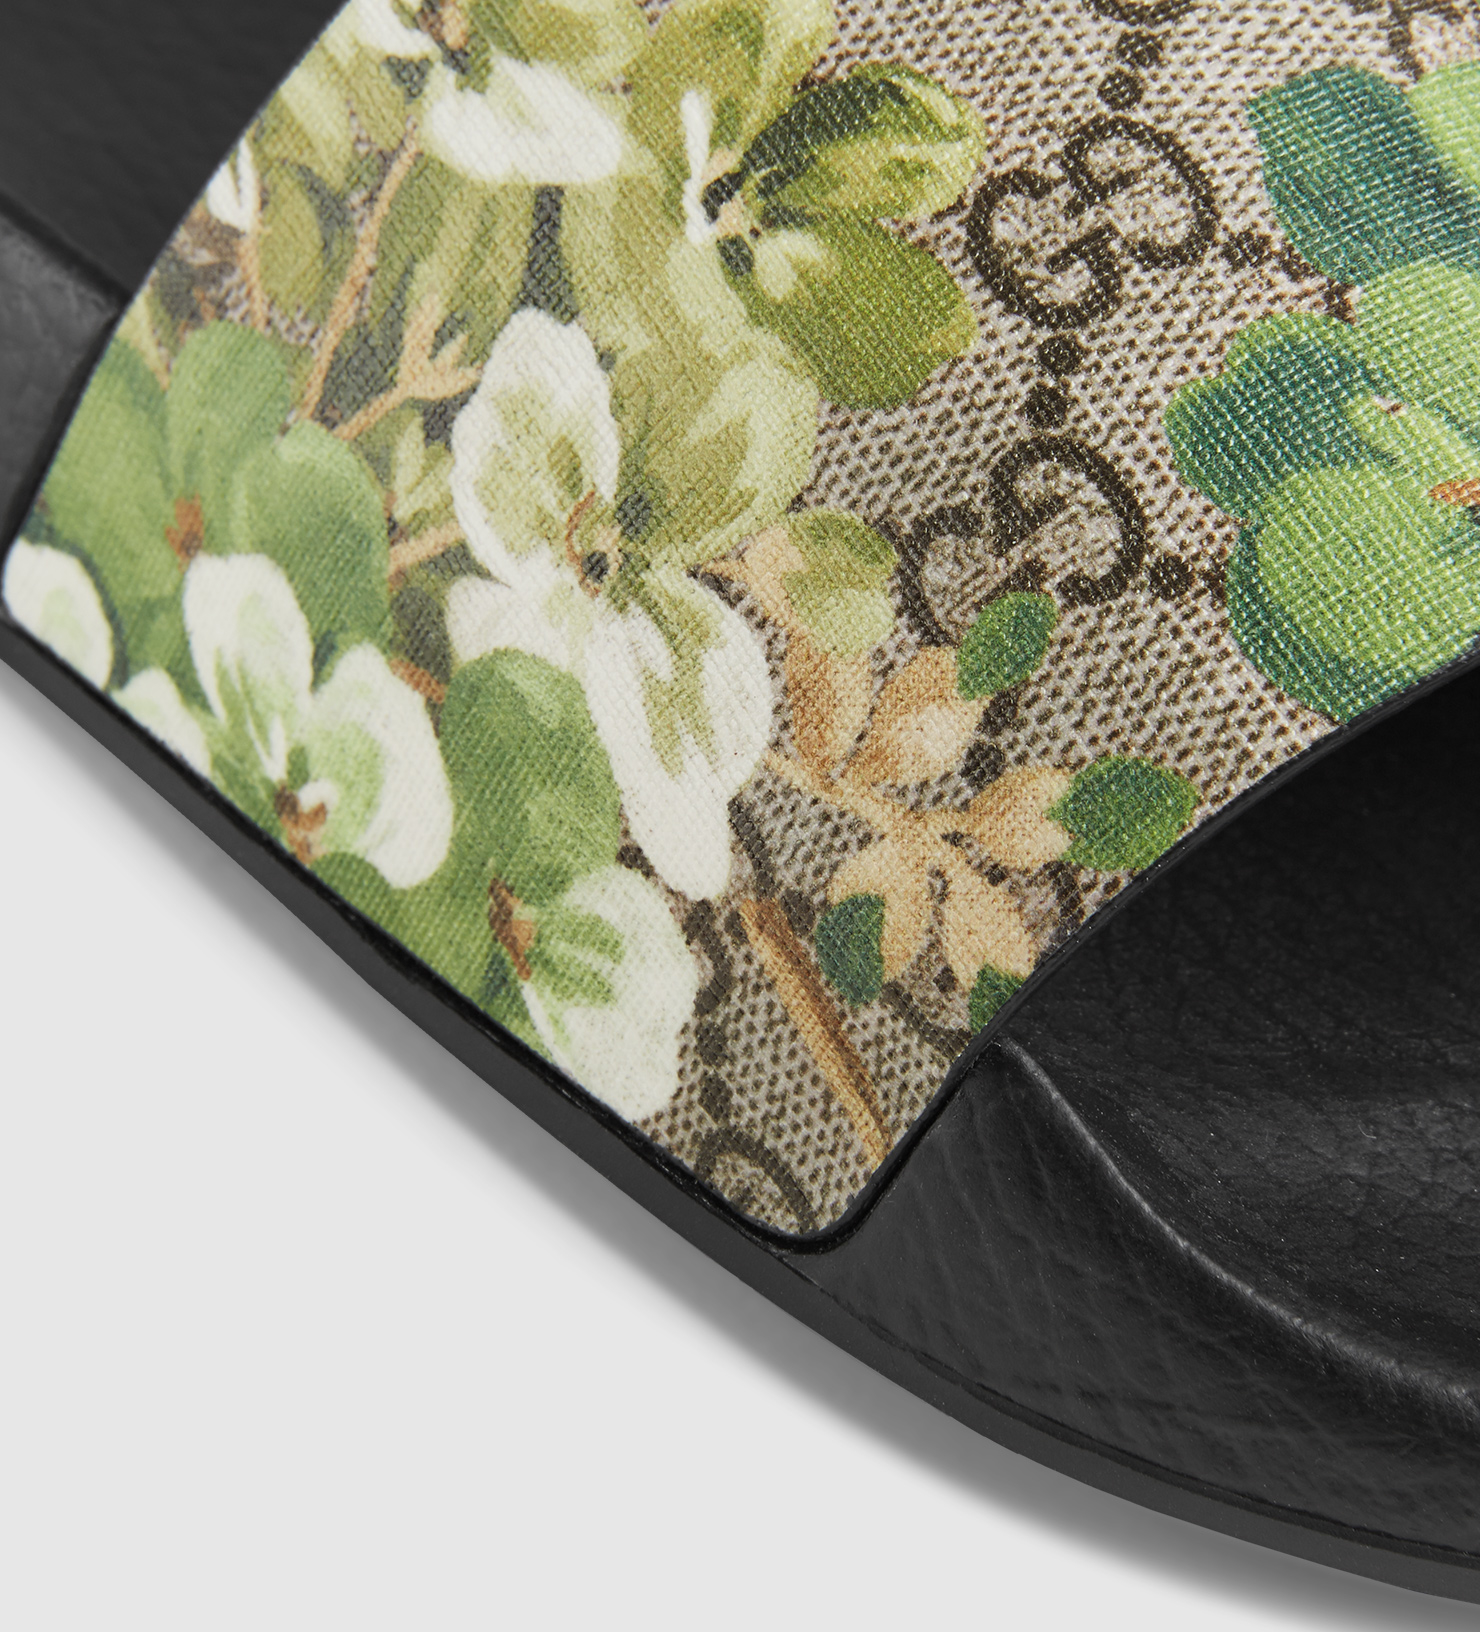 84775ad8f40d Lyst - Gucci Blooms Print Sandal in Green for Men